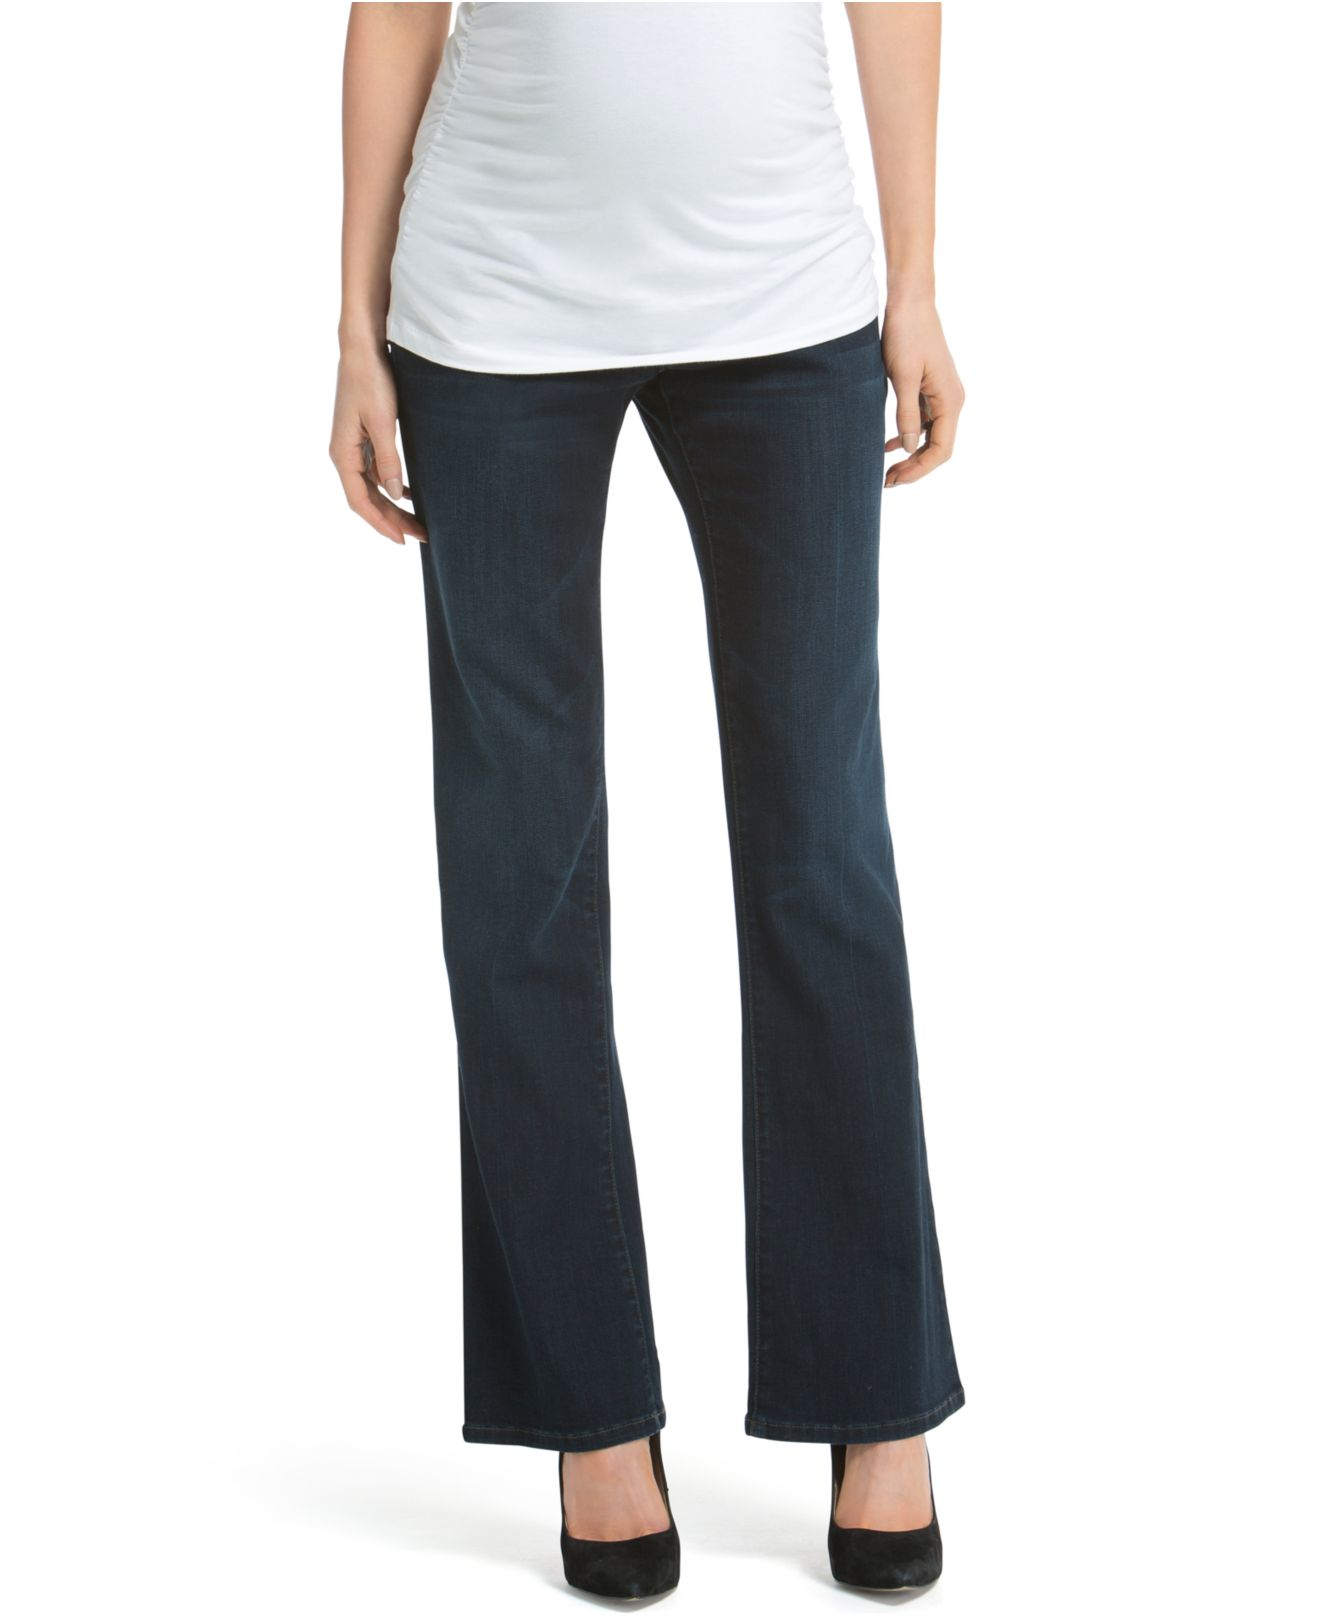 Find and save ideas about Wide leg jeans on Pinterest. | See more ideas about Trouser pants, Trouser jeans and Women's wide legged jeans. I really want a pair of great fitting dark wide flare jeans. Wide leg jeans are a great alternative to boring dress pants. Just make sure to find a dark wash, and you can easily pair them with a satin.